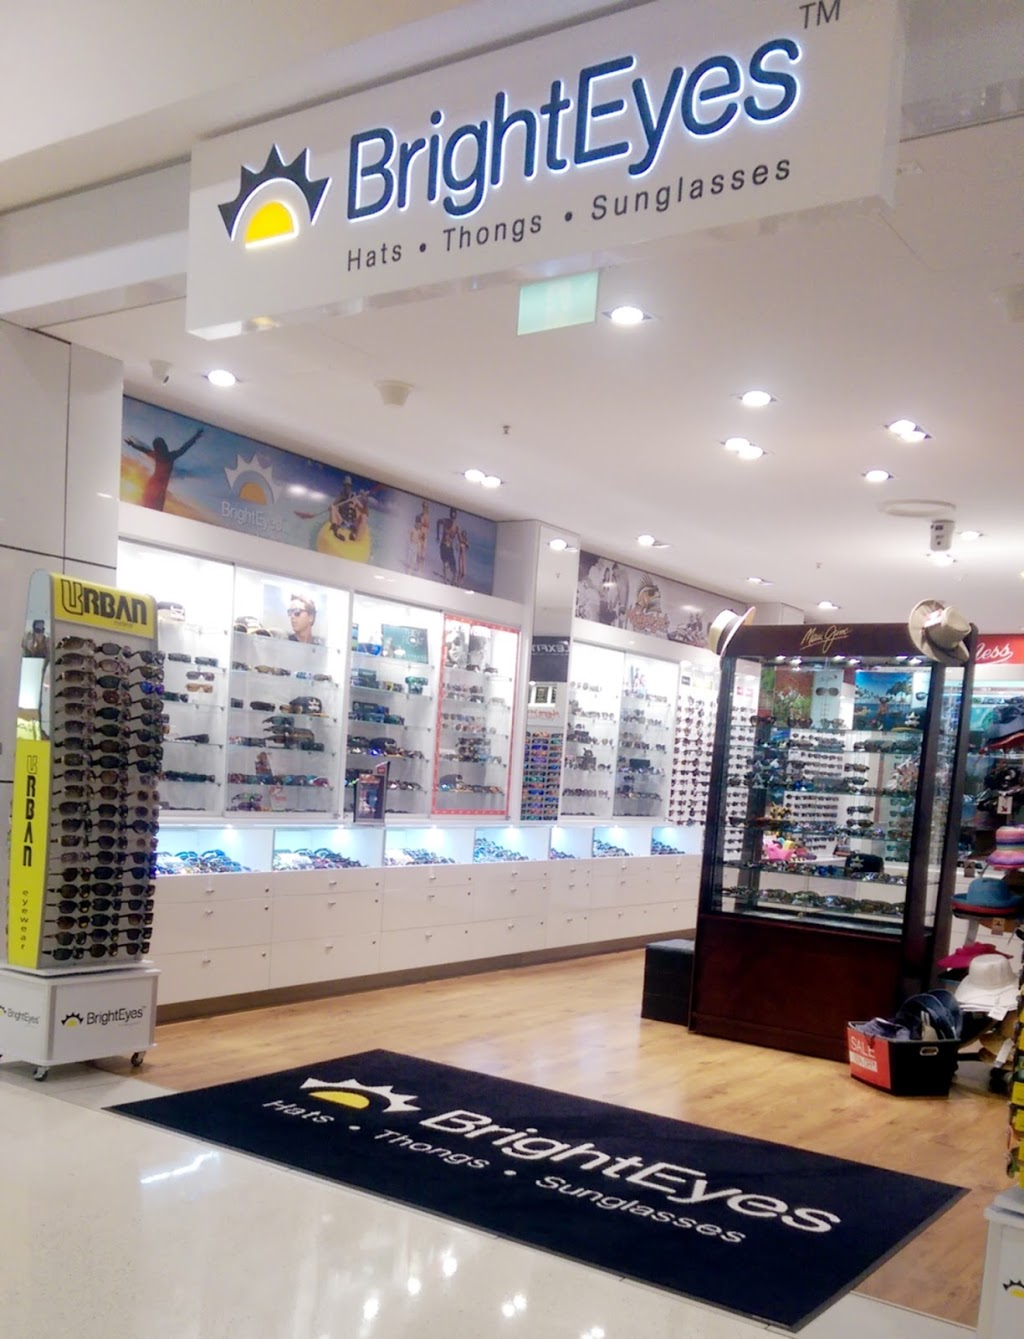 BrightEyes Hats Thongs Sunglasses | store | Shop 103a, Castletown Shopping Centre, Hyde Park QLD 4812, Australia | 0747724155 OR +61 7 4772 4155